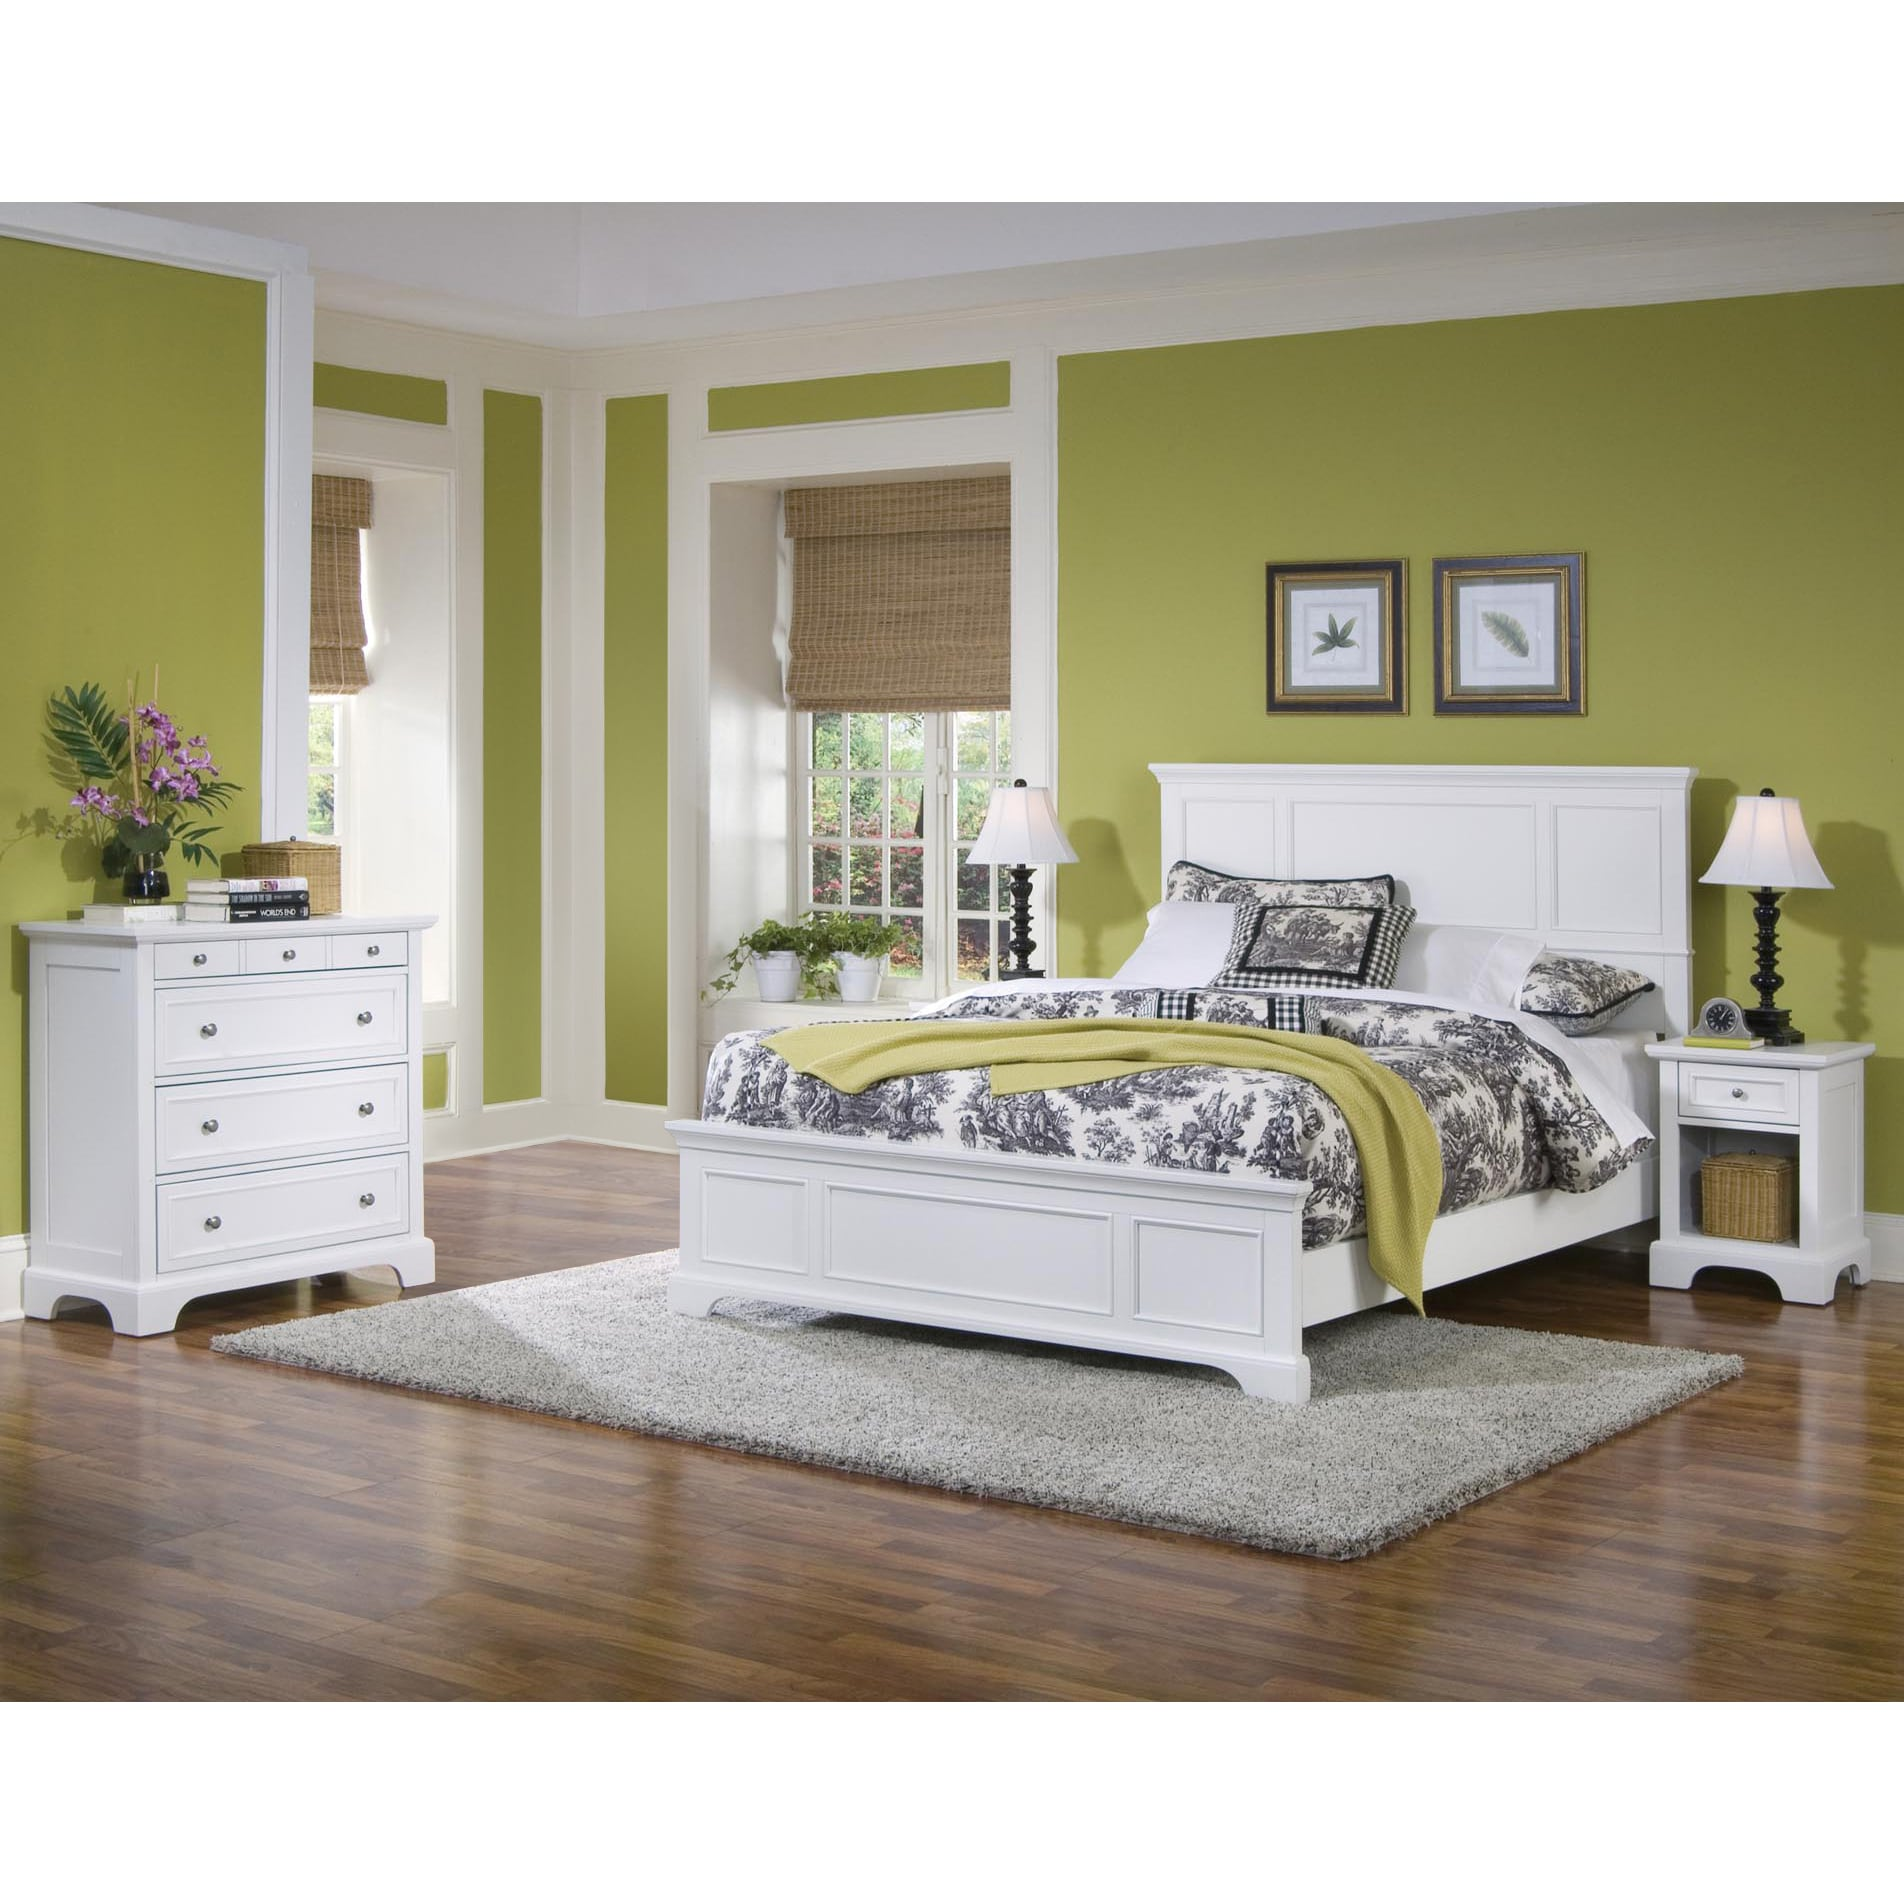 Shop Copper Grove Cormorant Queen Bed, Nightstand, and Chest